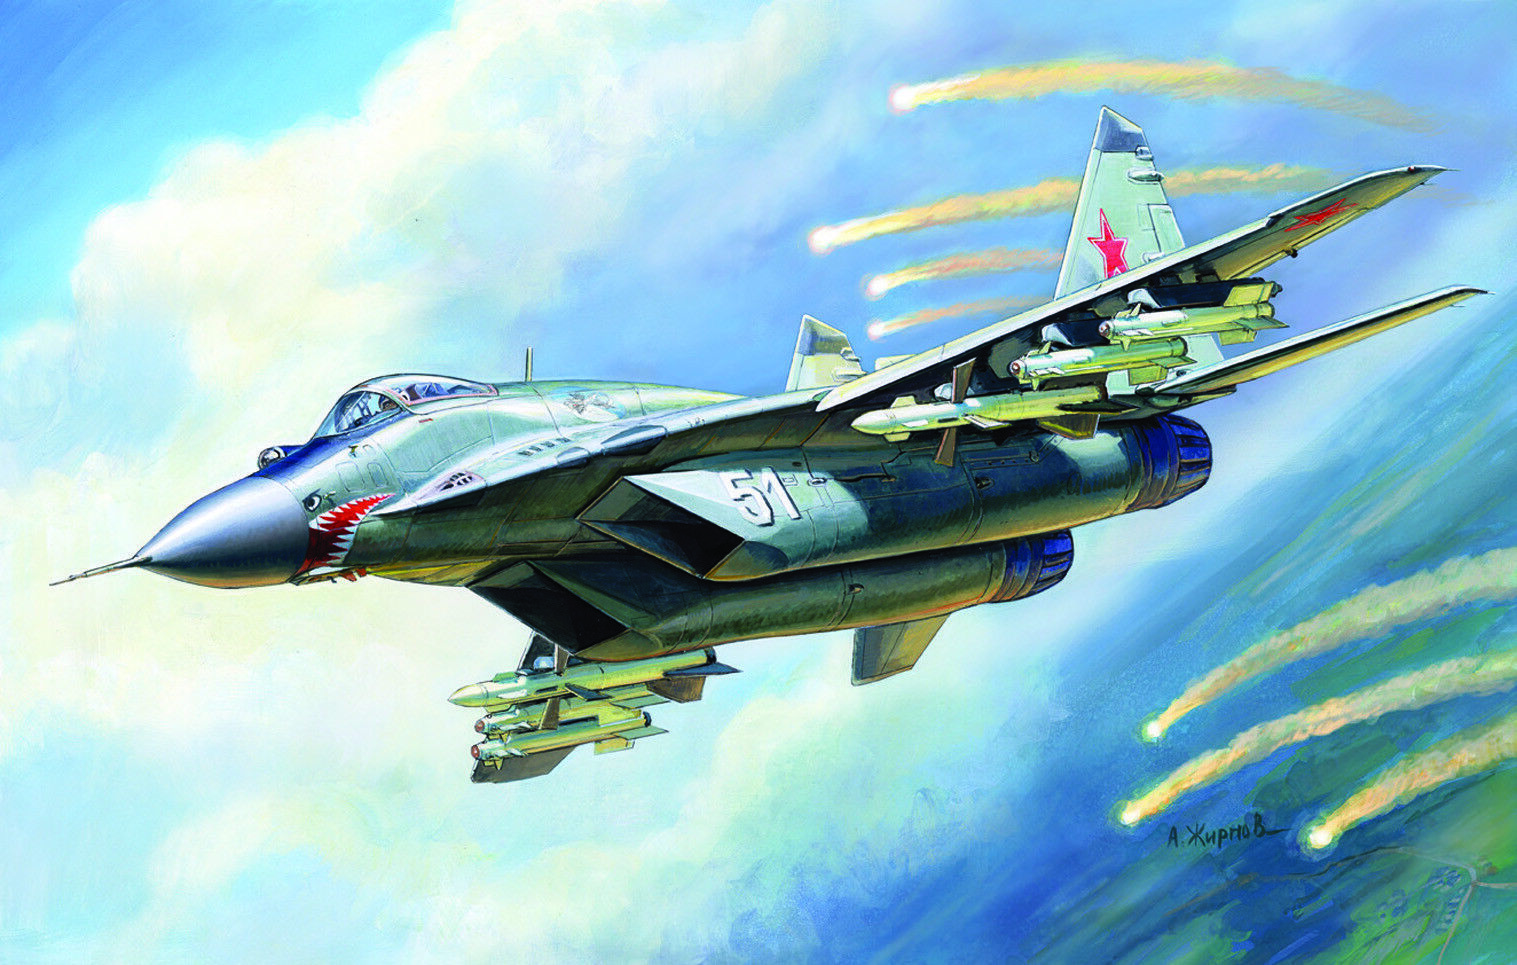 ZVEZDA 7278 MIG-29 Russian Fighter (9-13) Plastic Kit 1 72 Scale T48 Post